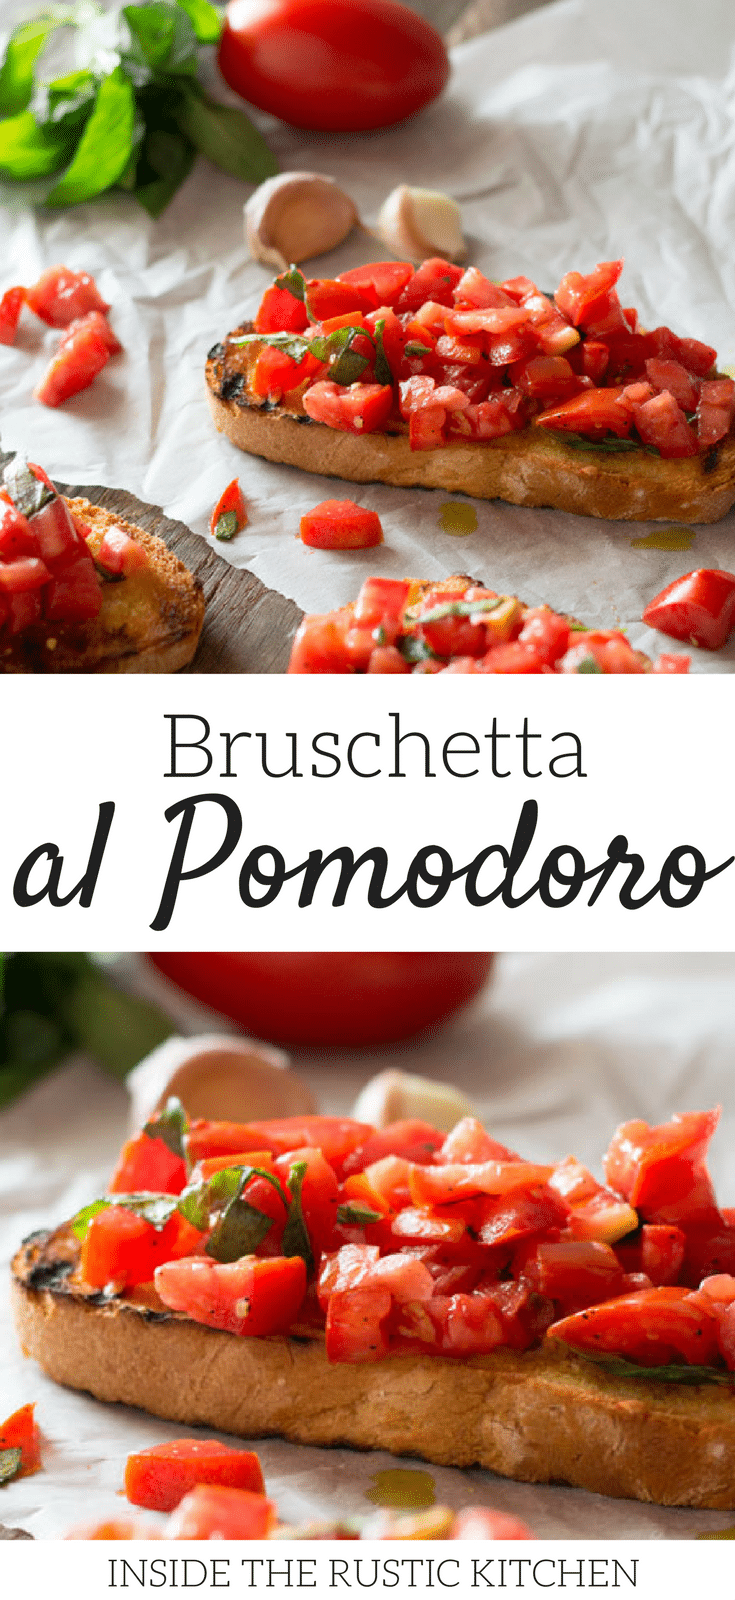 Bruschetta al pomodoro - classic Italian tomato bruschetta recipe made with ripe, juicy tomatoes, fresh basil and extra virgin olive oil. Served on char grilled, garlic toasts, this one is always a winner! Authentic Italian recipes at Inside the rustic kitchen